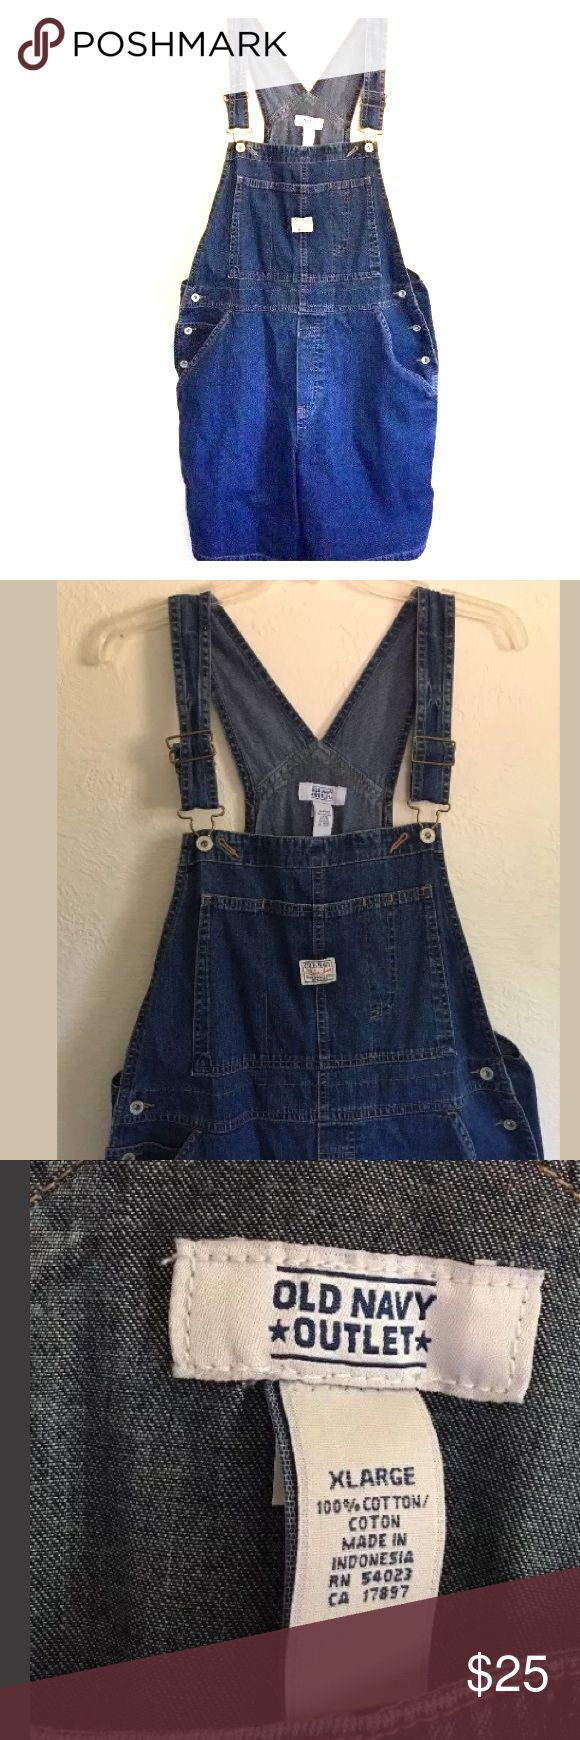 Old Navy Shortalls Old Navy Outlet Womens Size XL Blue Jean Denim Shortalls Bib overall Shorts; gently used condition, no flaws; 100% cotton Old Navy Jeans Overalls